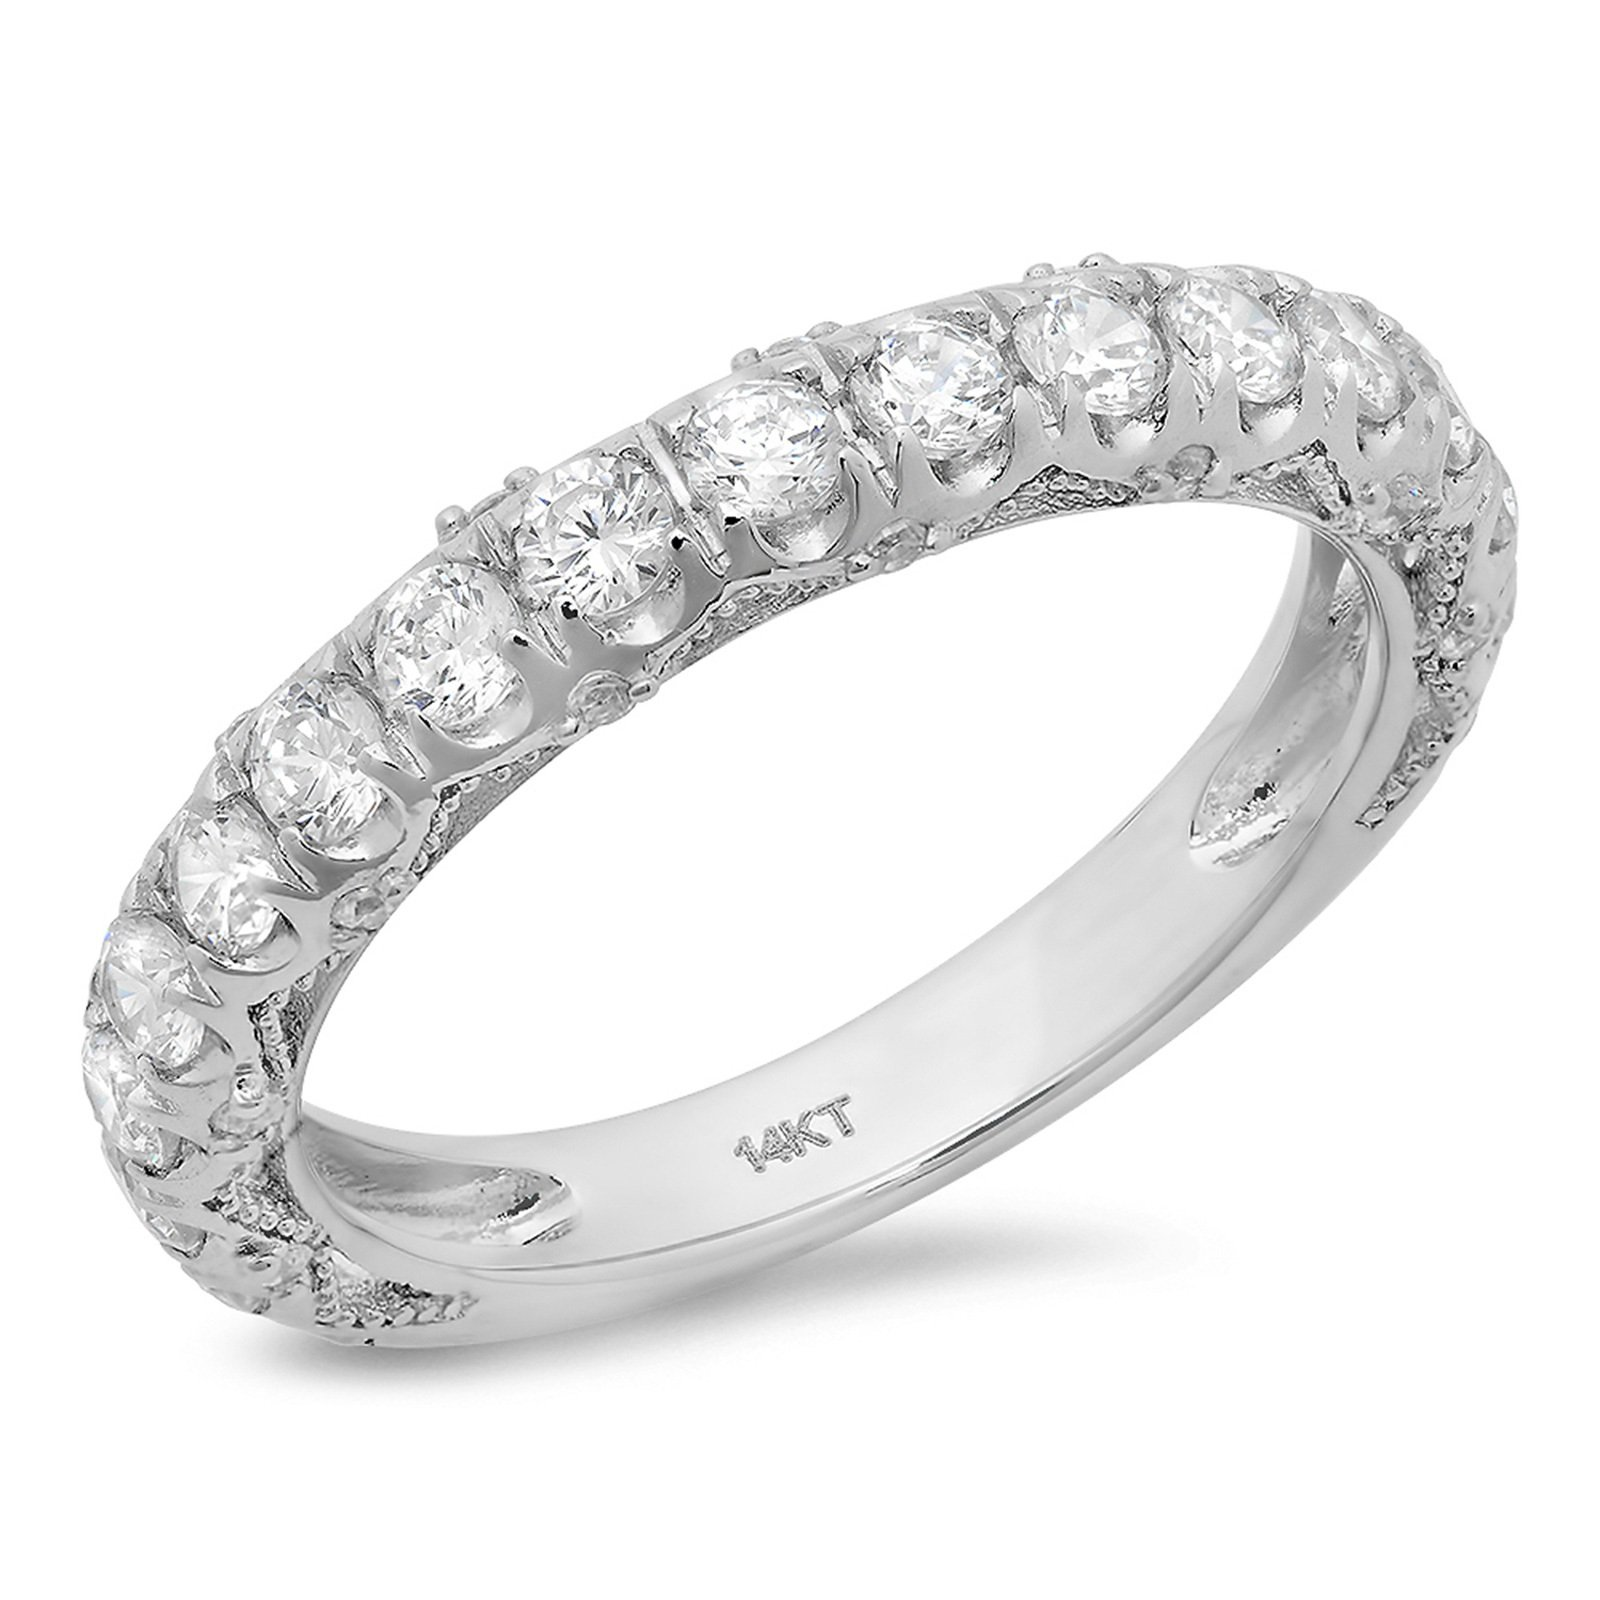 Clara Pucci 3.20 ct Round Cut CZ Pave Set Bridal Wedding Engagement Band Ring 14k White Gold, Size 9.75 by Clara Pucci